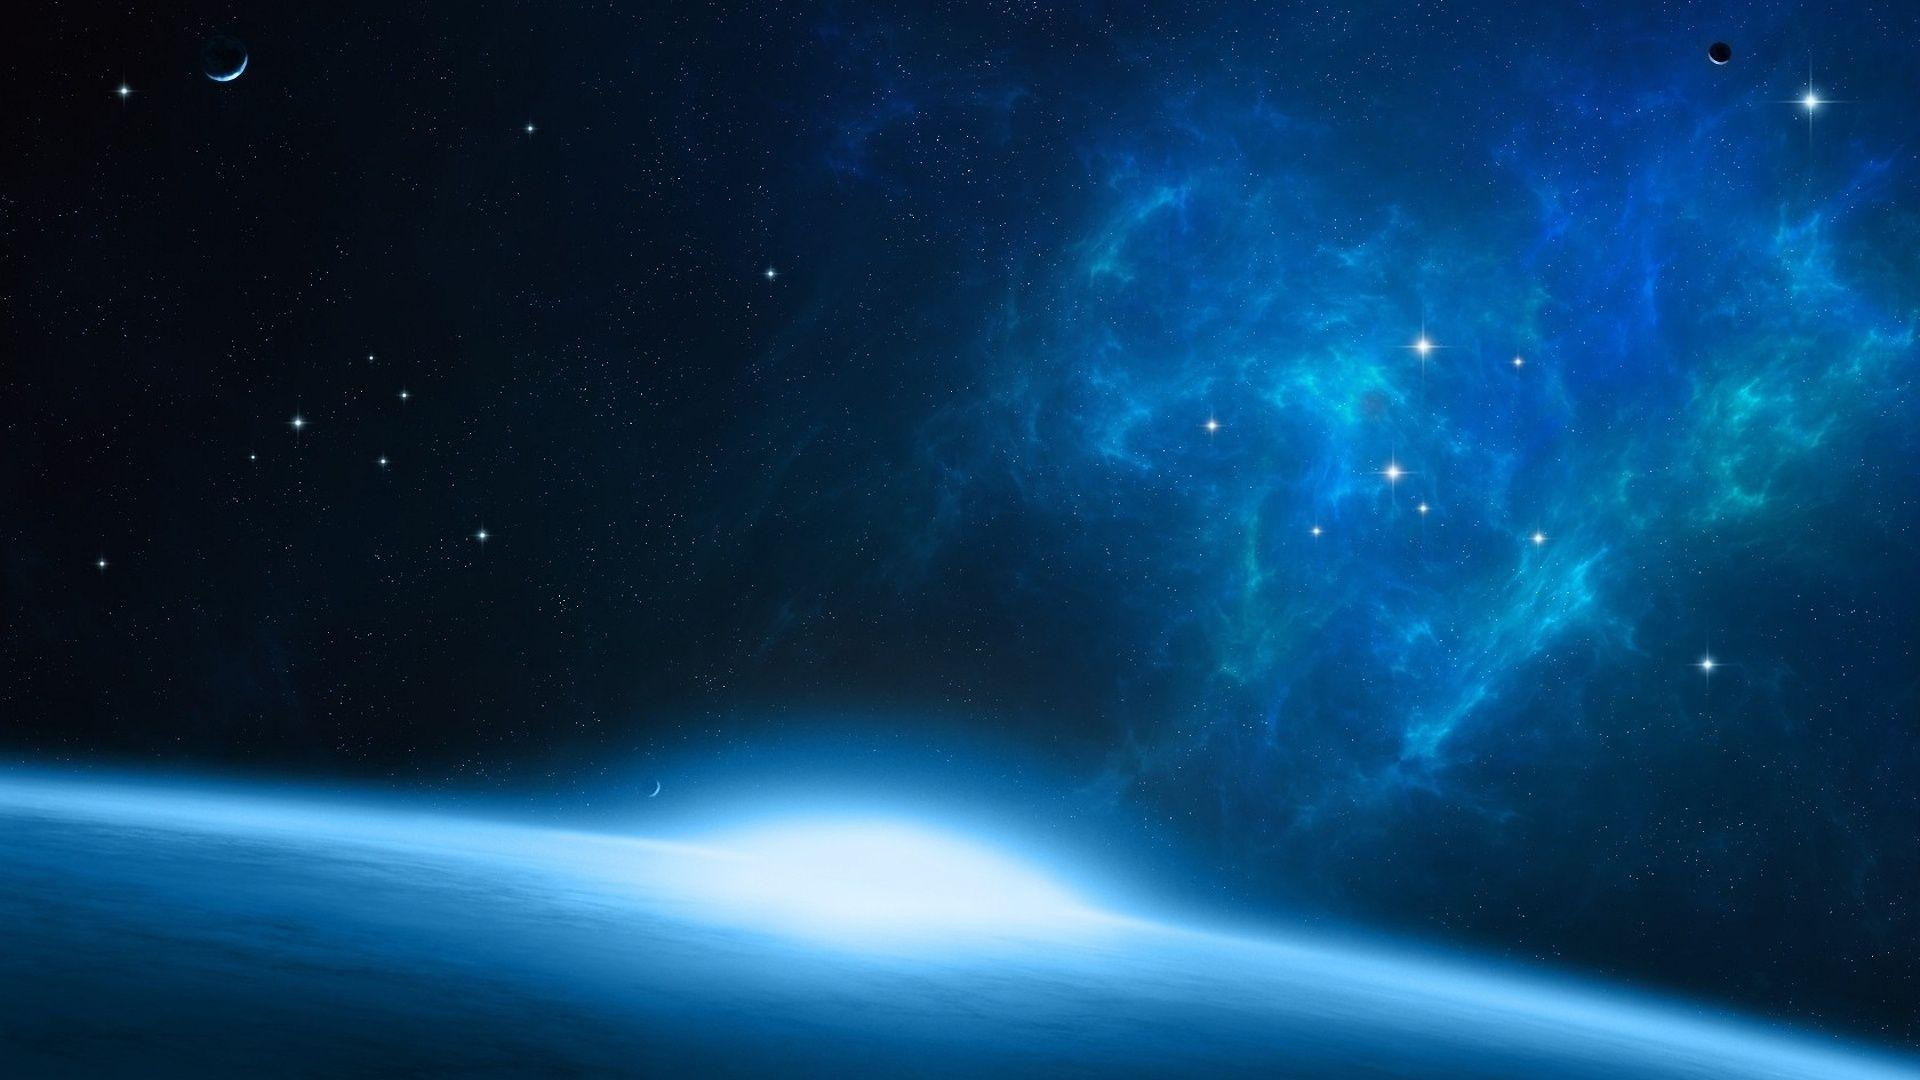 Blue Space Wallpapers 1920x1080